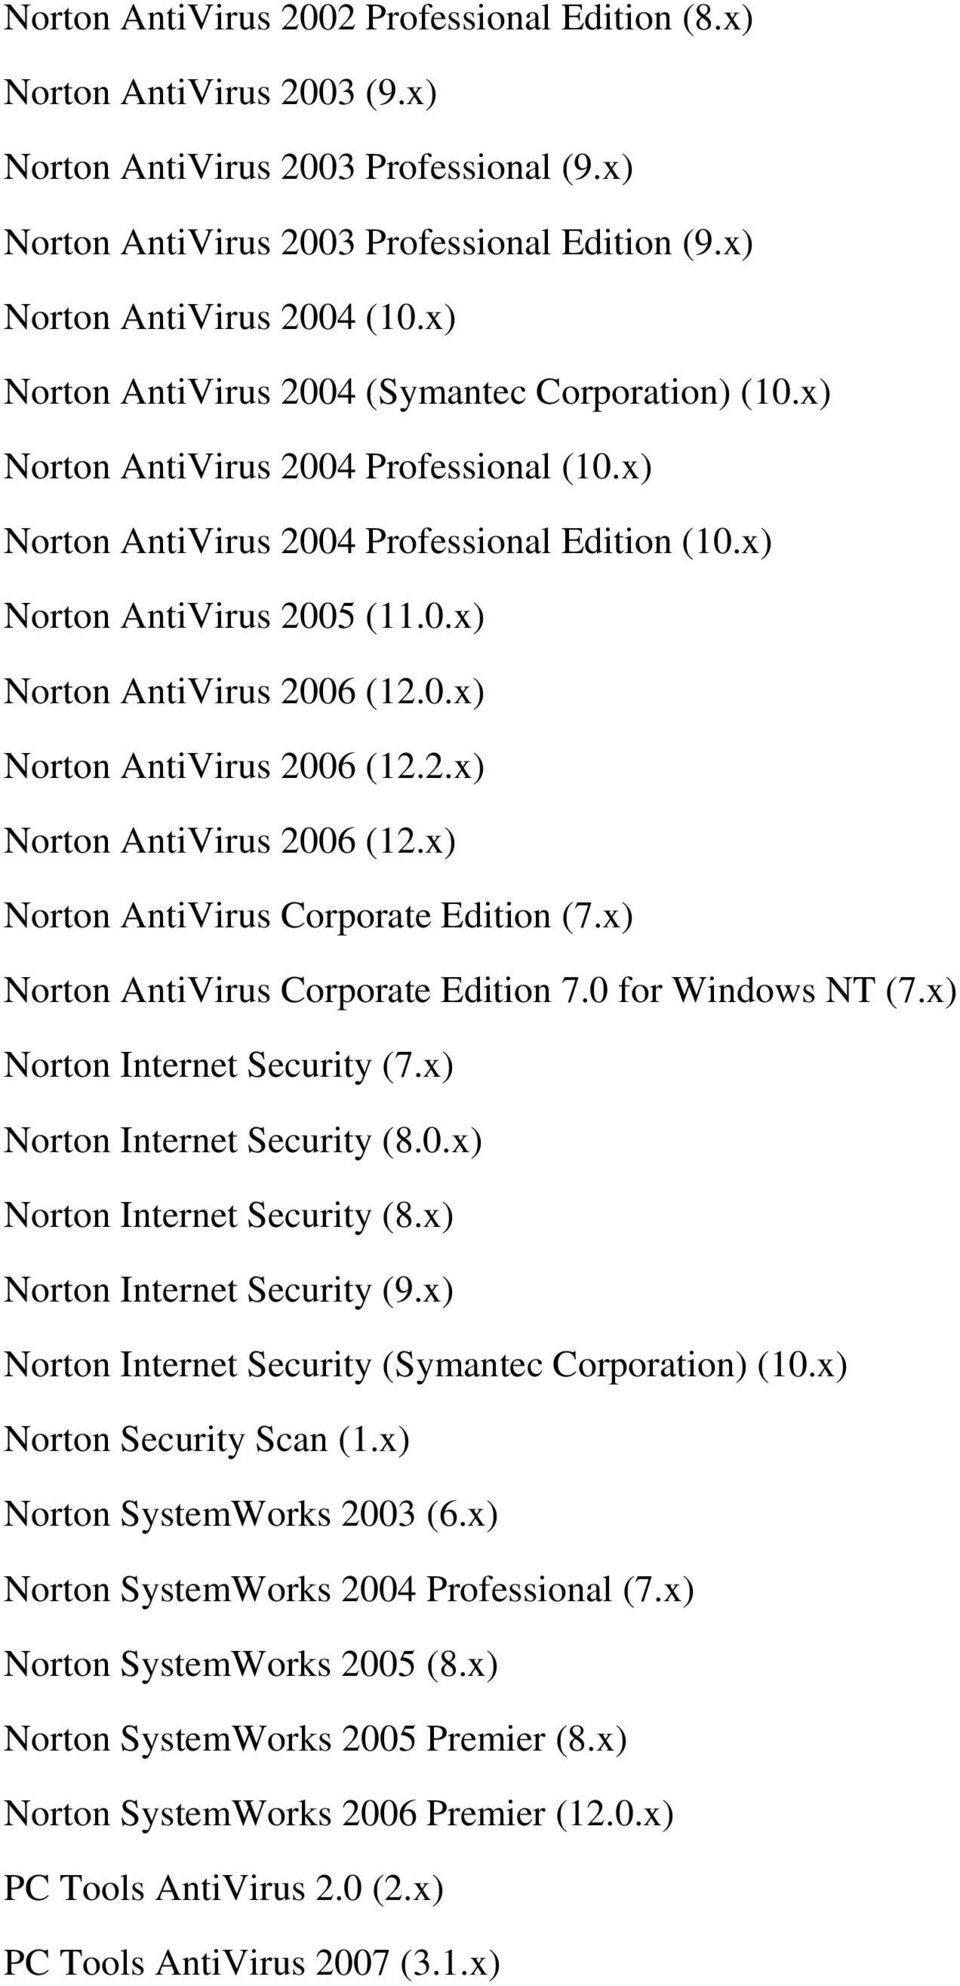 0.x) Norton AntiVirus 2006 (12.2.x) Norton AntiVirus 2006 (12.x) Norton AntiVirus Corporate Edition (7.x) Norton AntiVirus Corporate Edition 7.0 for Windows NT (7.x) Norton Internet Security (7.